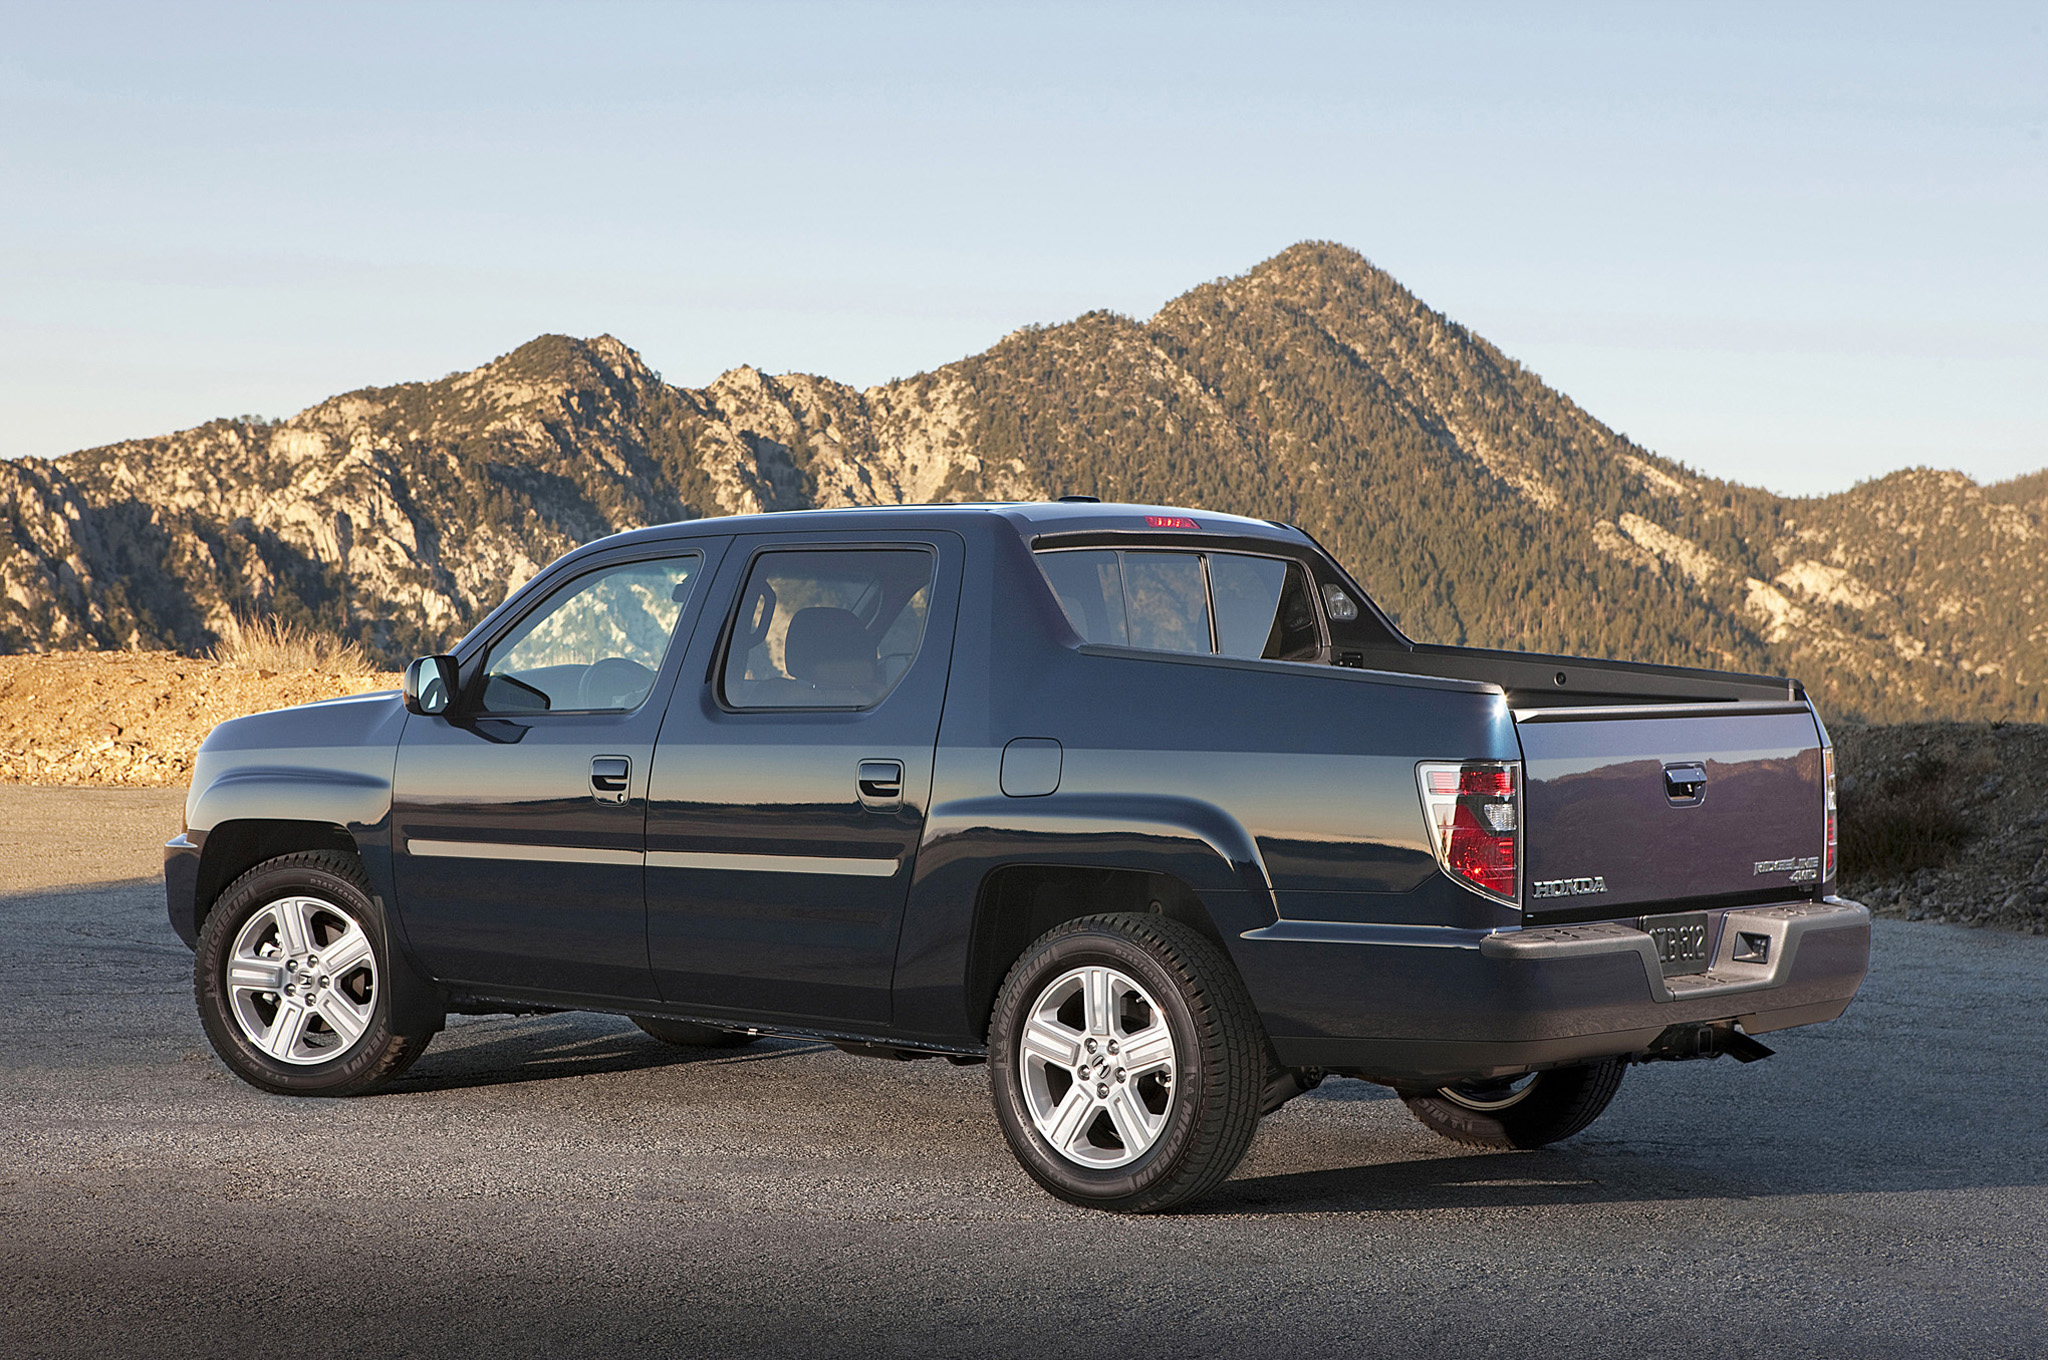 2013 Honda Ridgeline - Information and photos - ZombieDrive